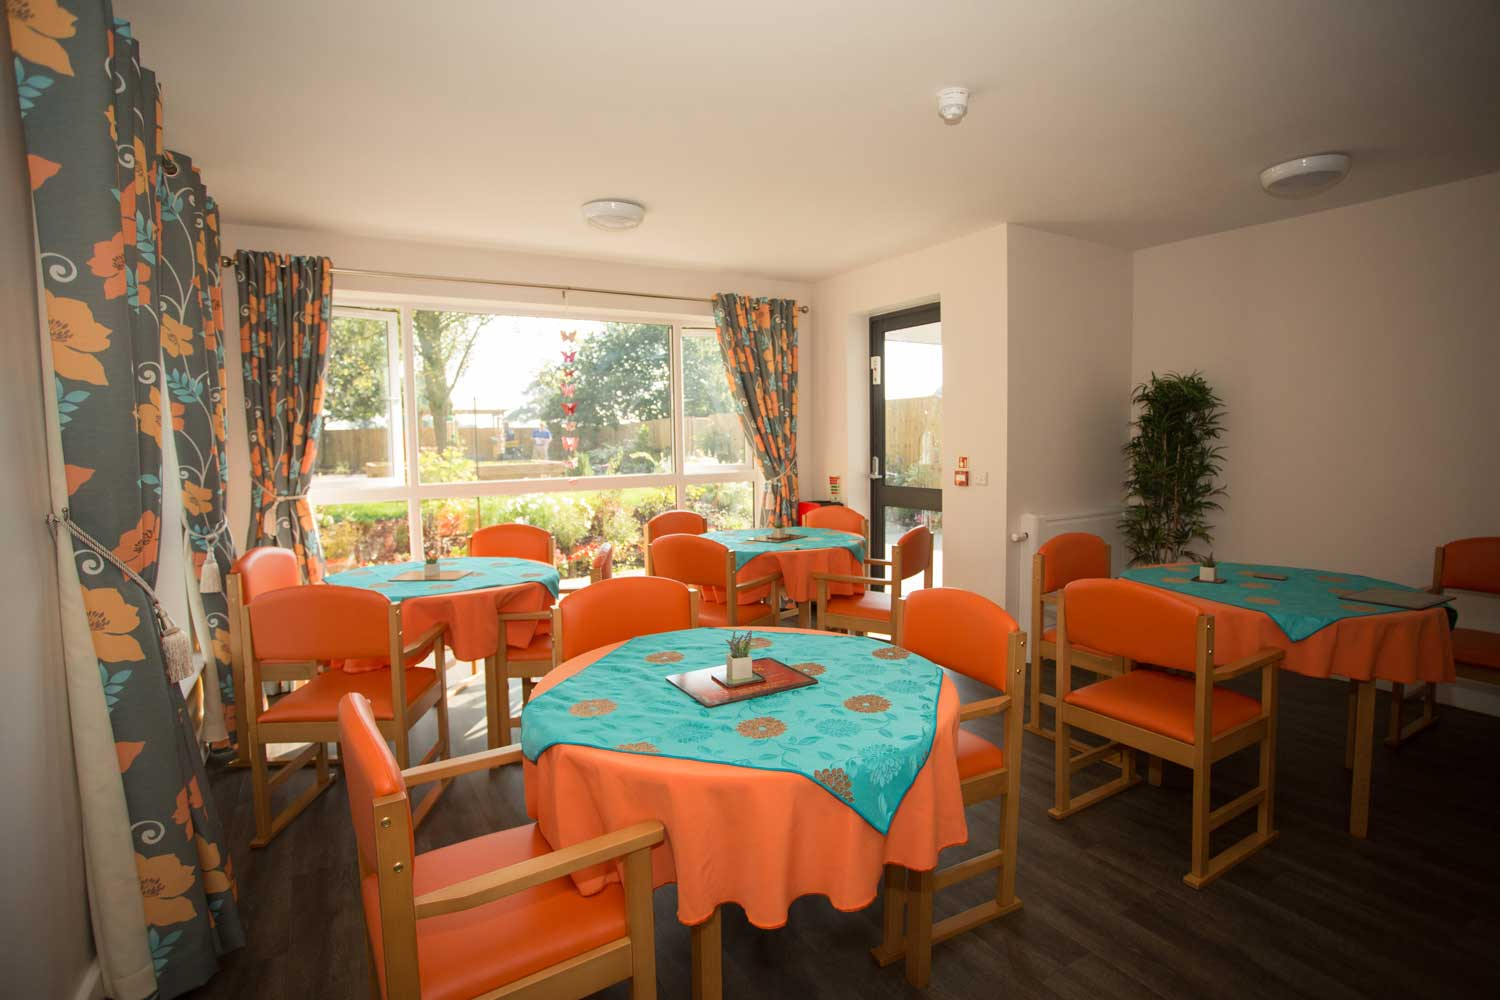 Mount pleasant nursing home knutsford cheshire for Nursing home dining room ideas